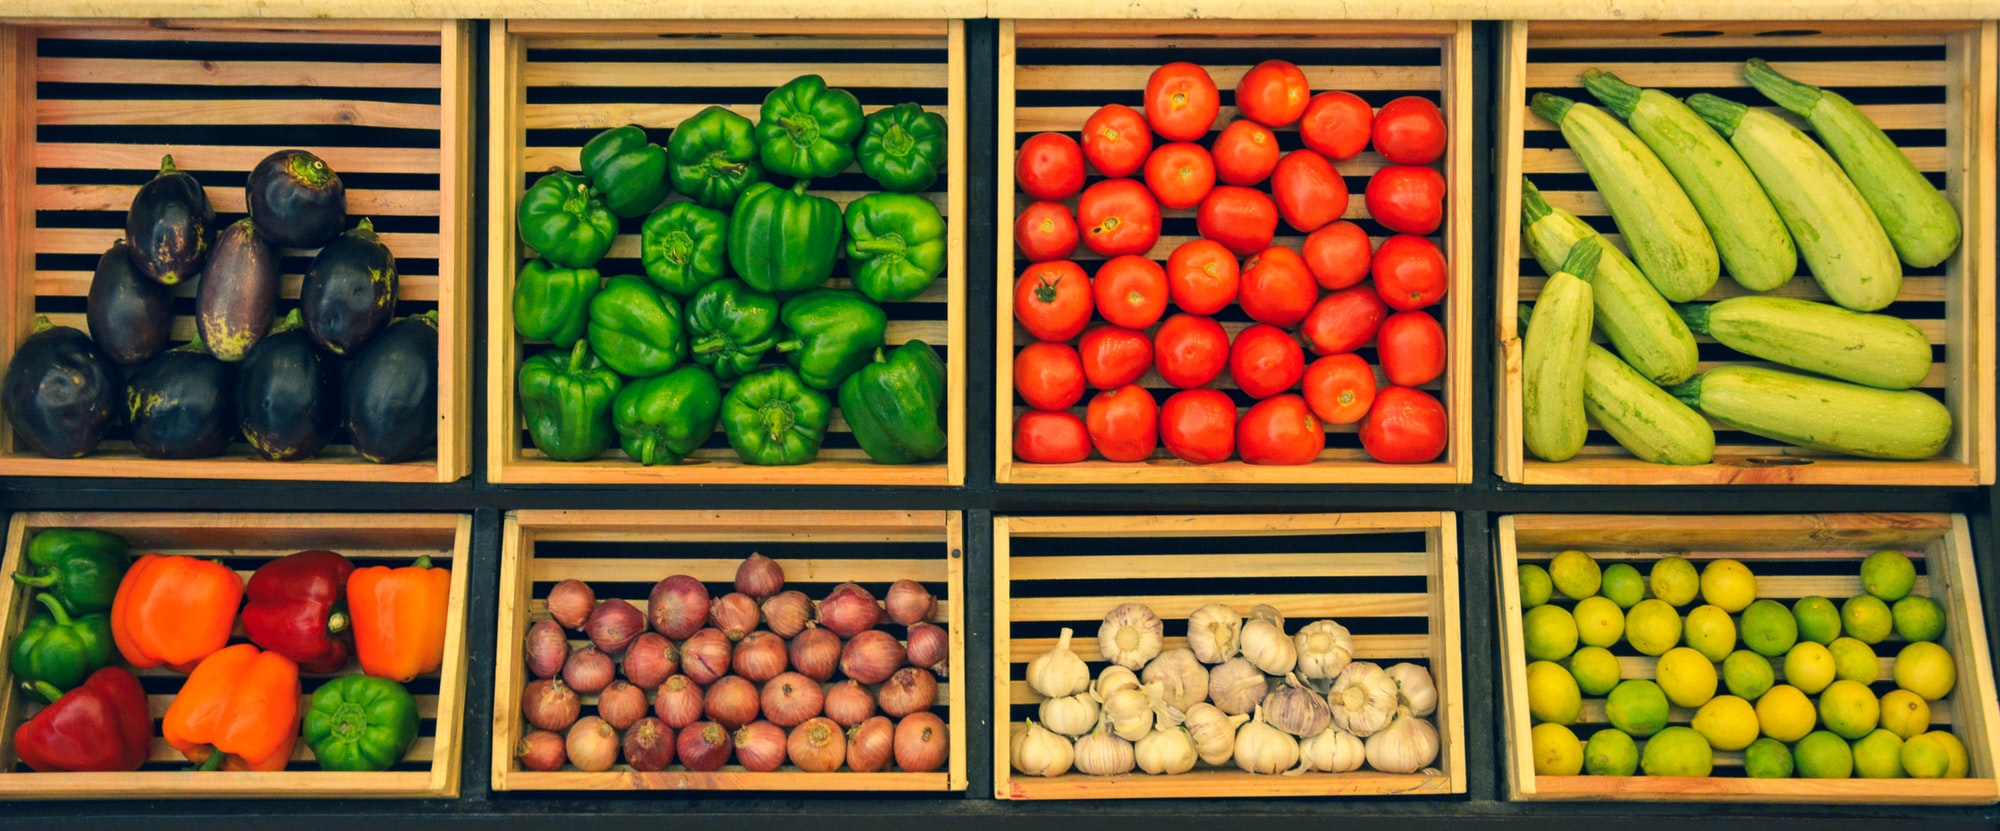 Neat arrangement of vegetables & cooking items. I took this shot at one of the hotels I was staying at